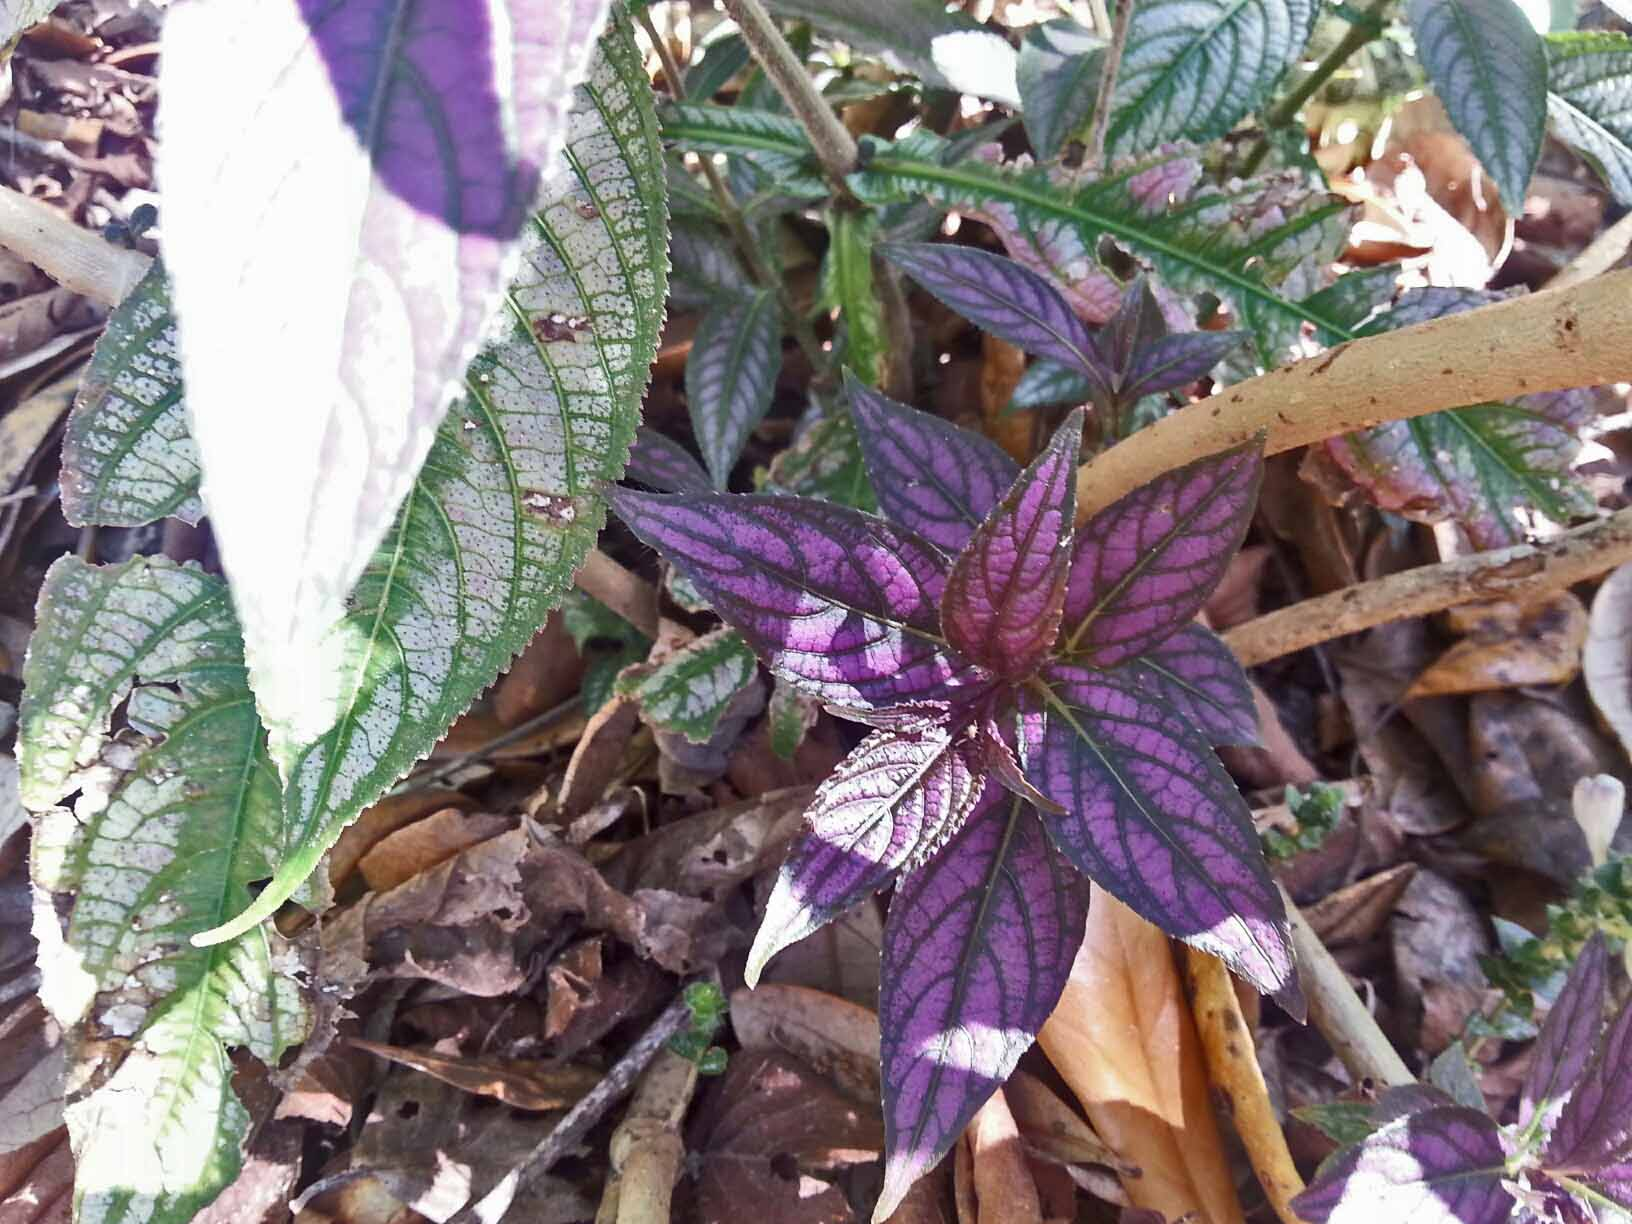 The massive stand of persian shield is a perfect mix of beginnings and endings ... glorious new leaves are sprouting from all the crusty, dead looking branches.